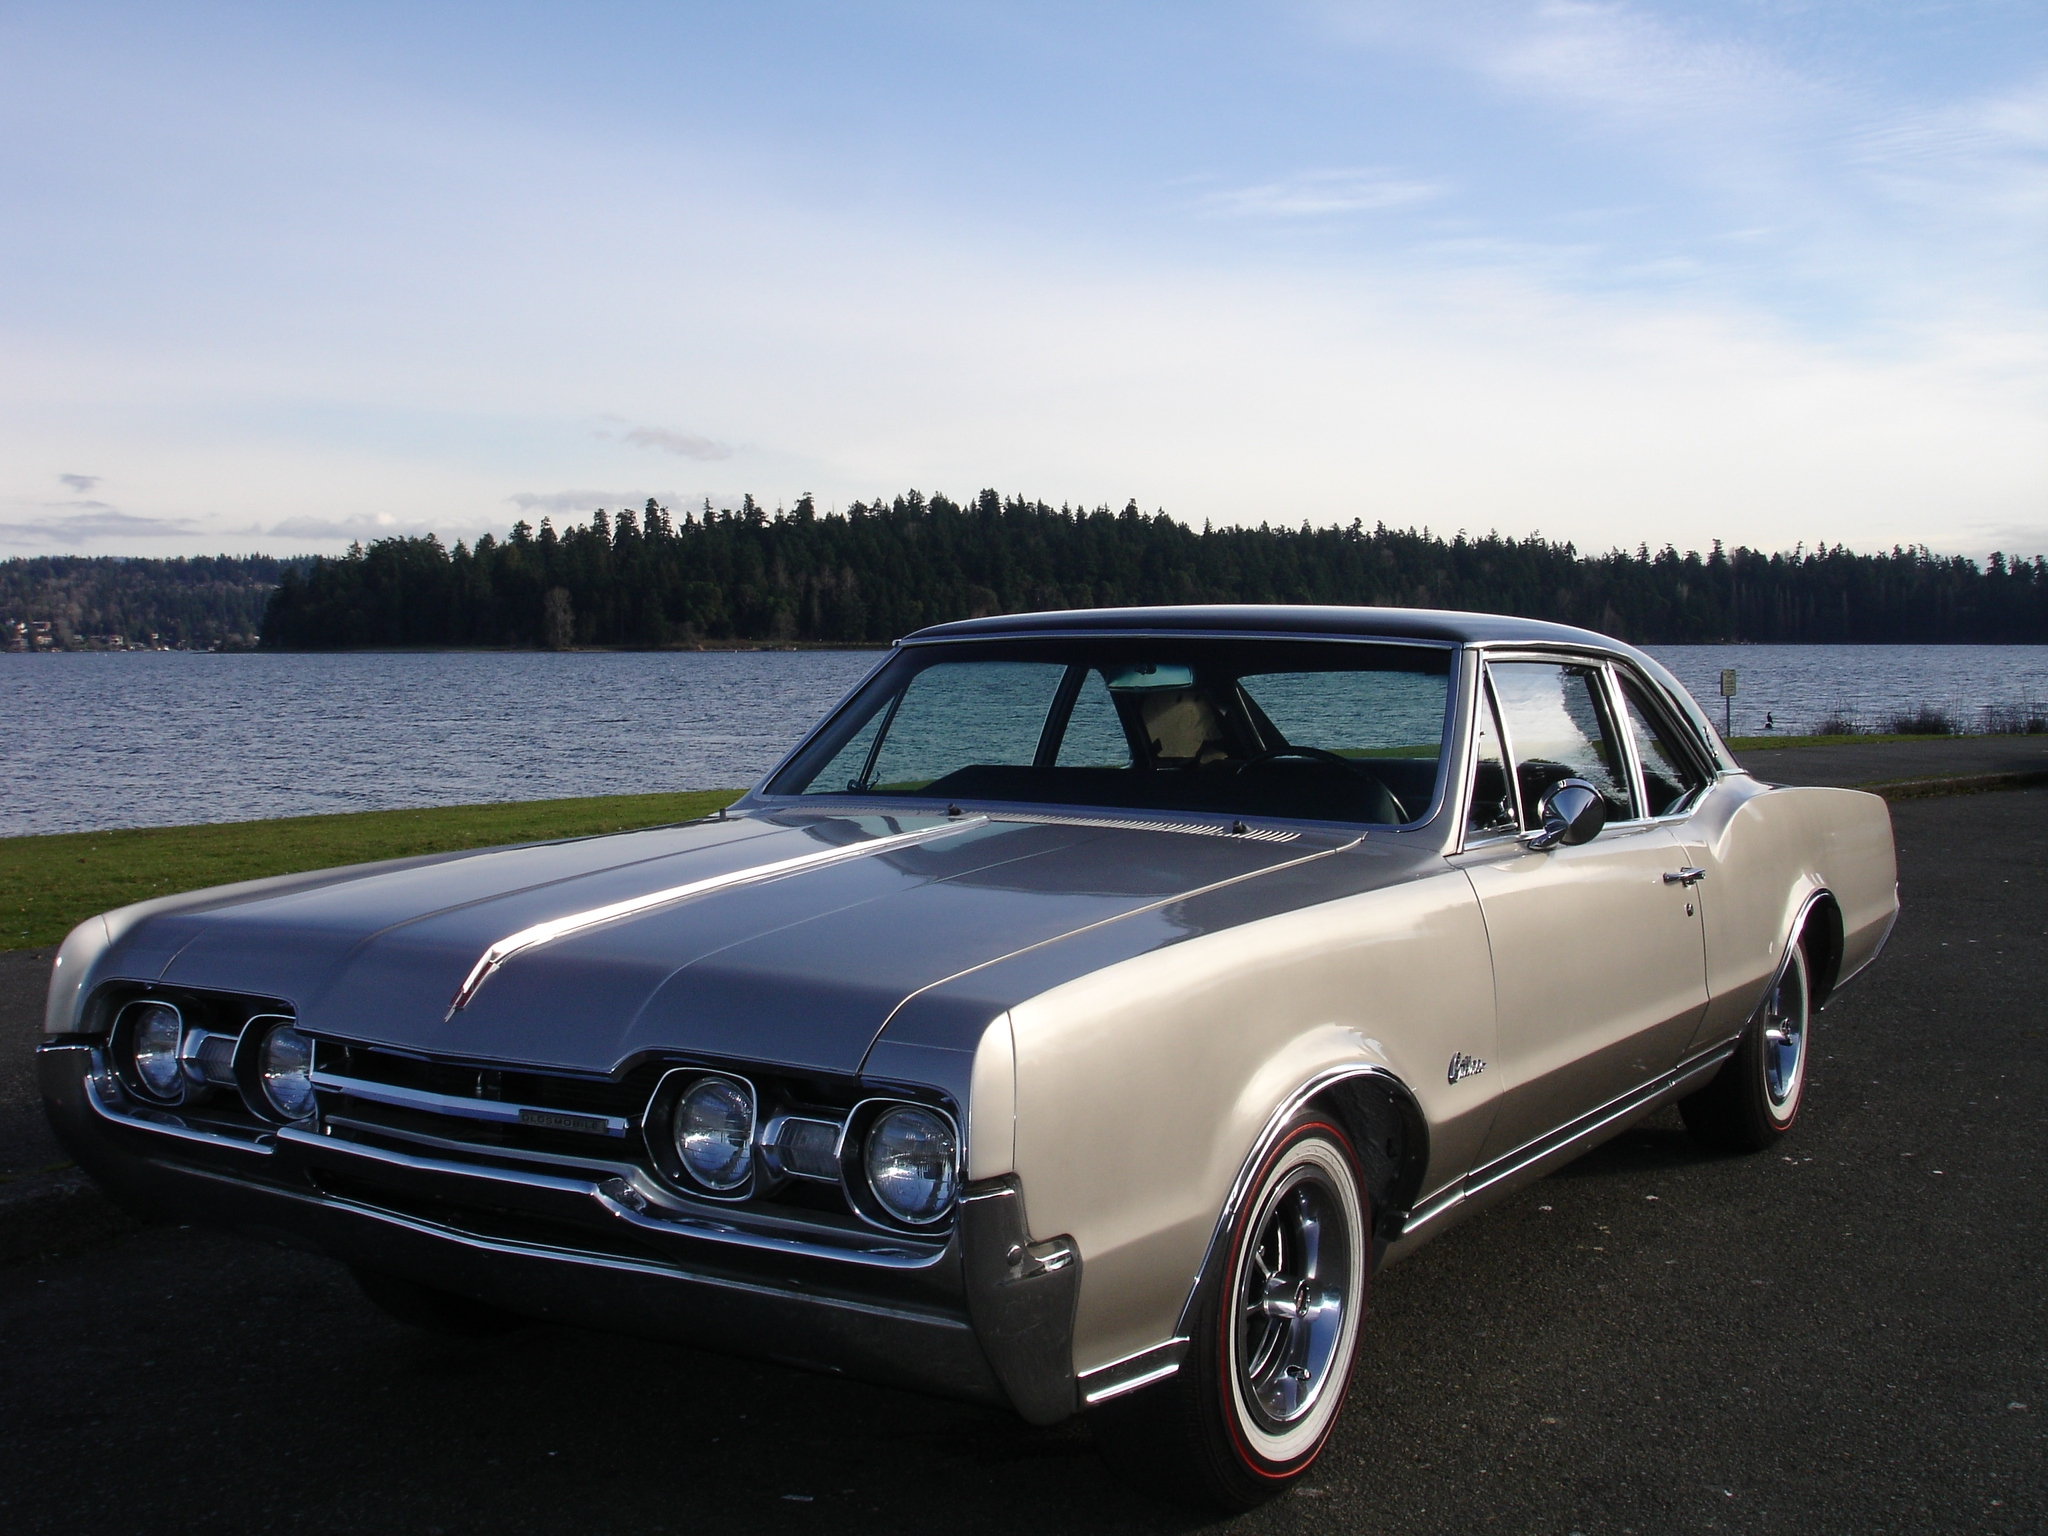 URNVS's 1967 Oldsmobile Cutlass Supreme